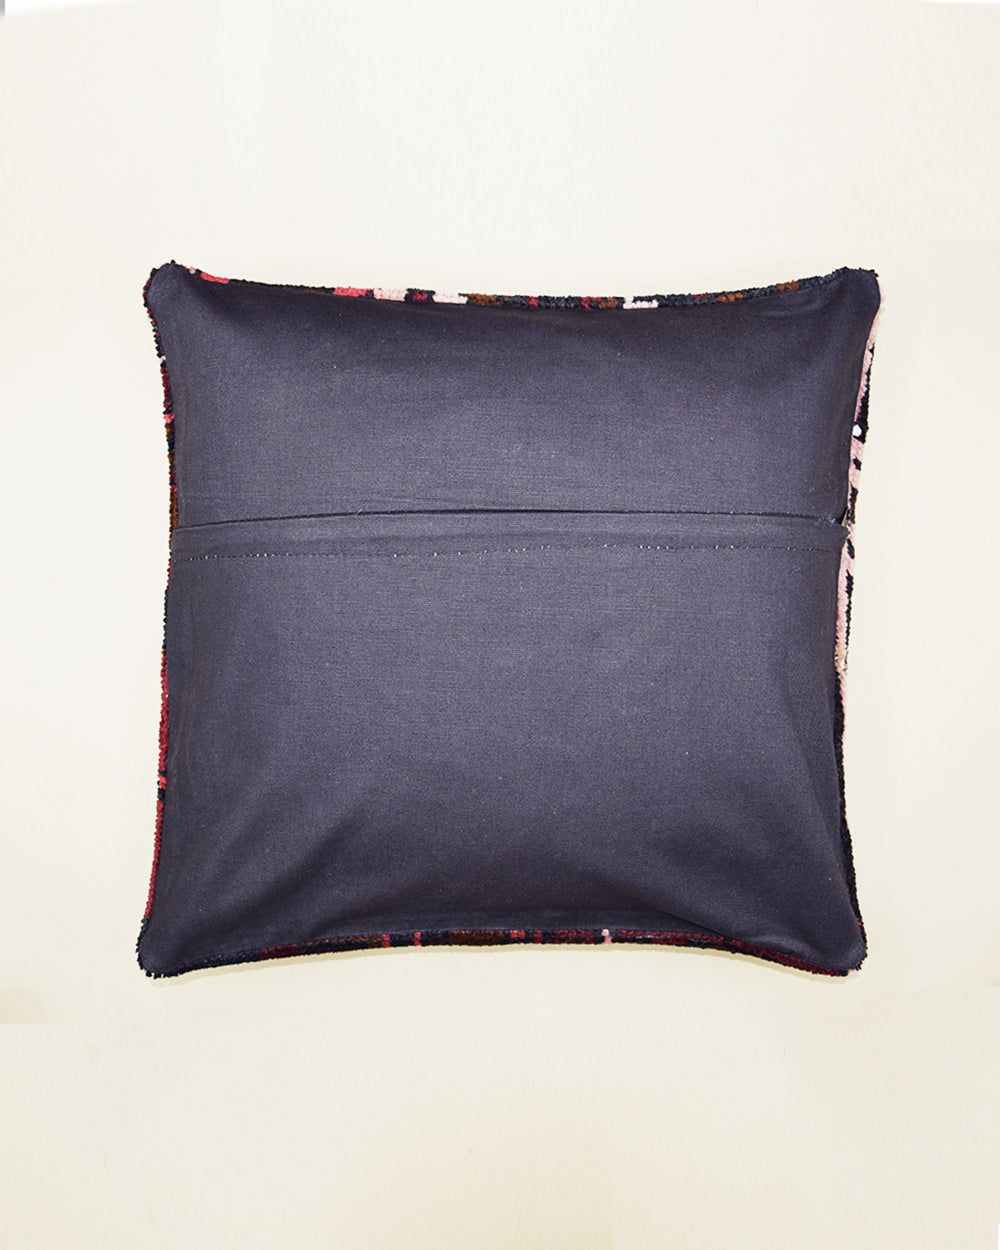 Rug Cushion Cover No. 3